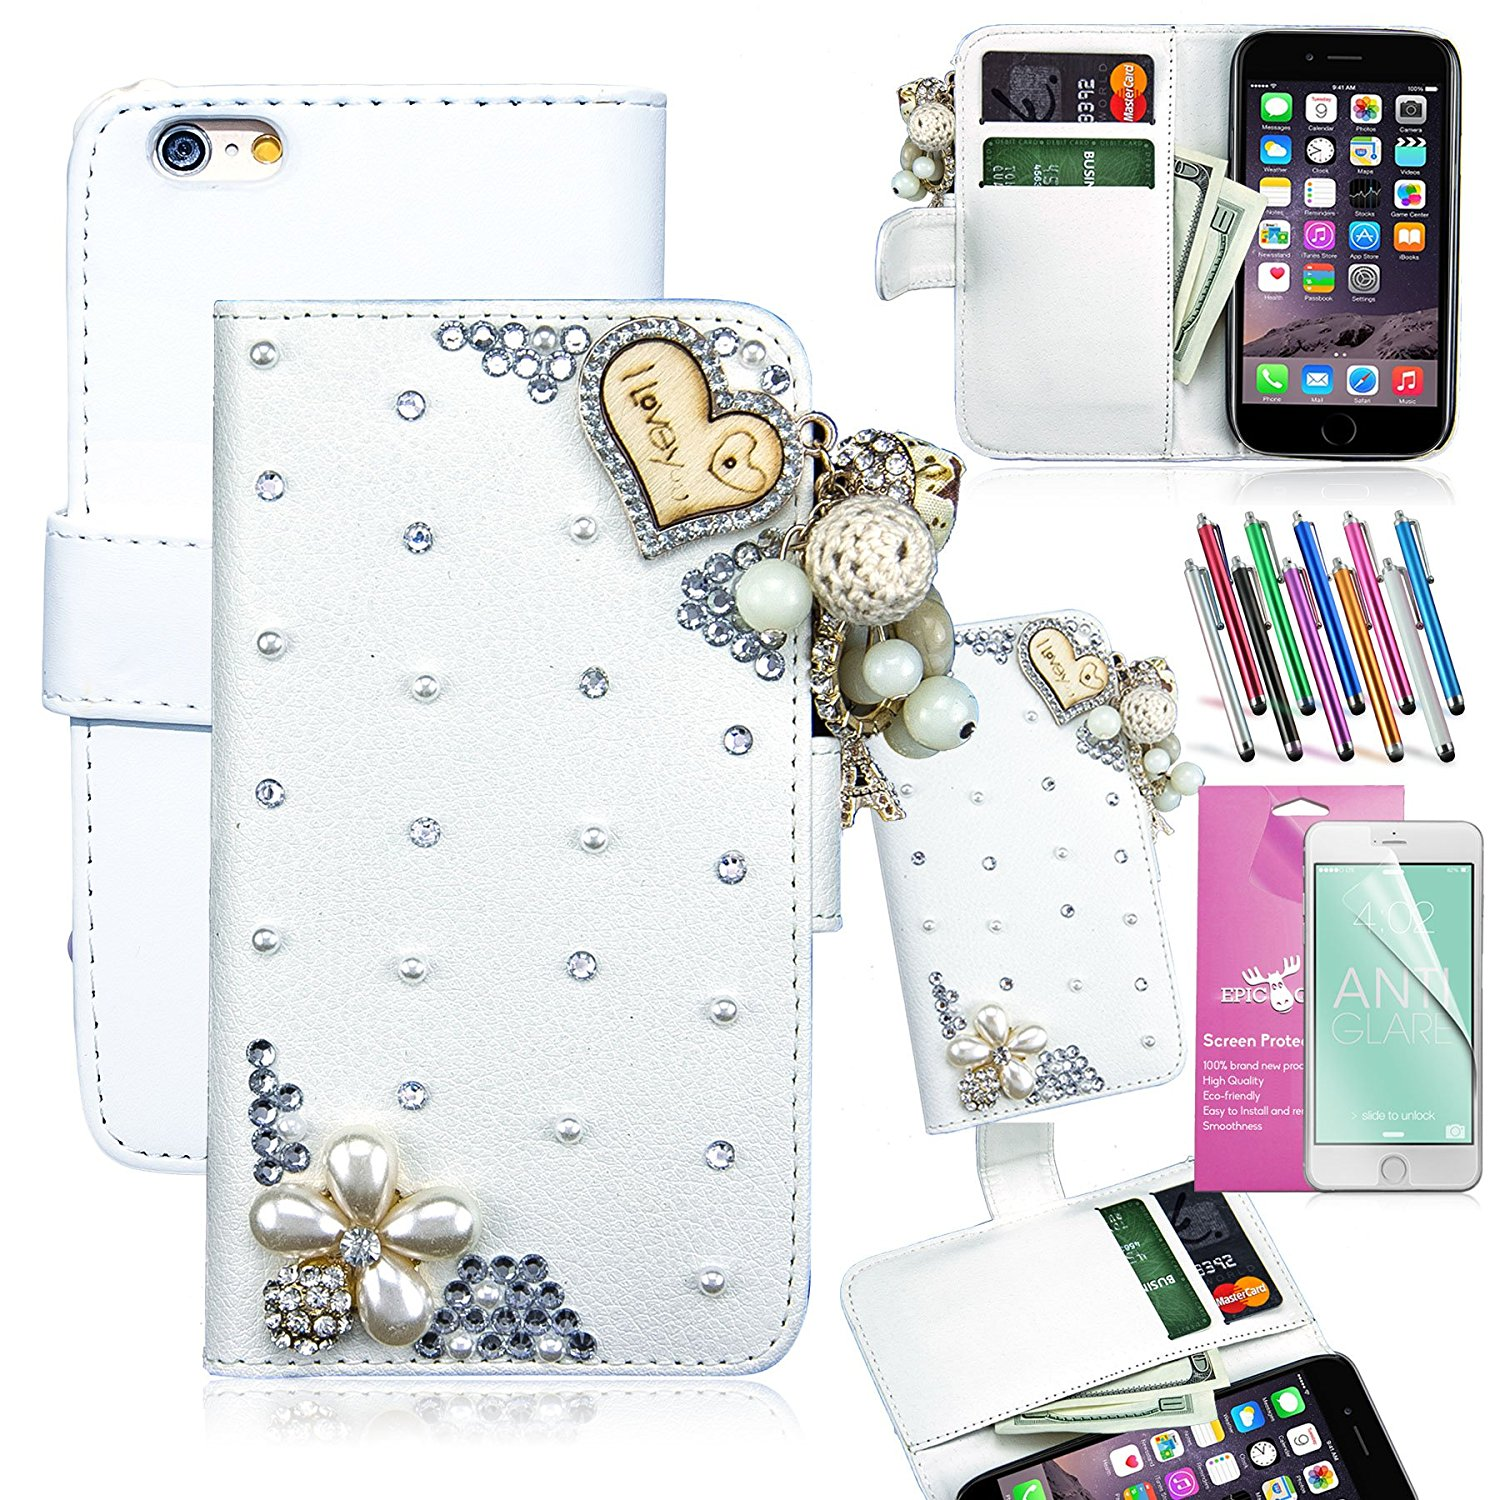 3D Apple iPhone 6 Plus [5.5] Wallet Case, EpicGadget(TM) Luxury Handmade Bling Bling White PU Leather Case With I Love You Tassel + 1 Screen Protector + 1 Stylus (I Love You White Leather Case)